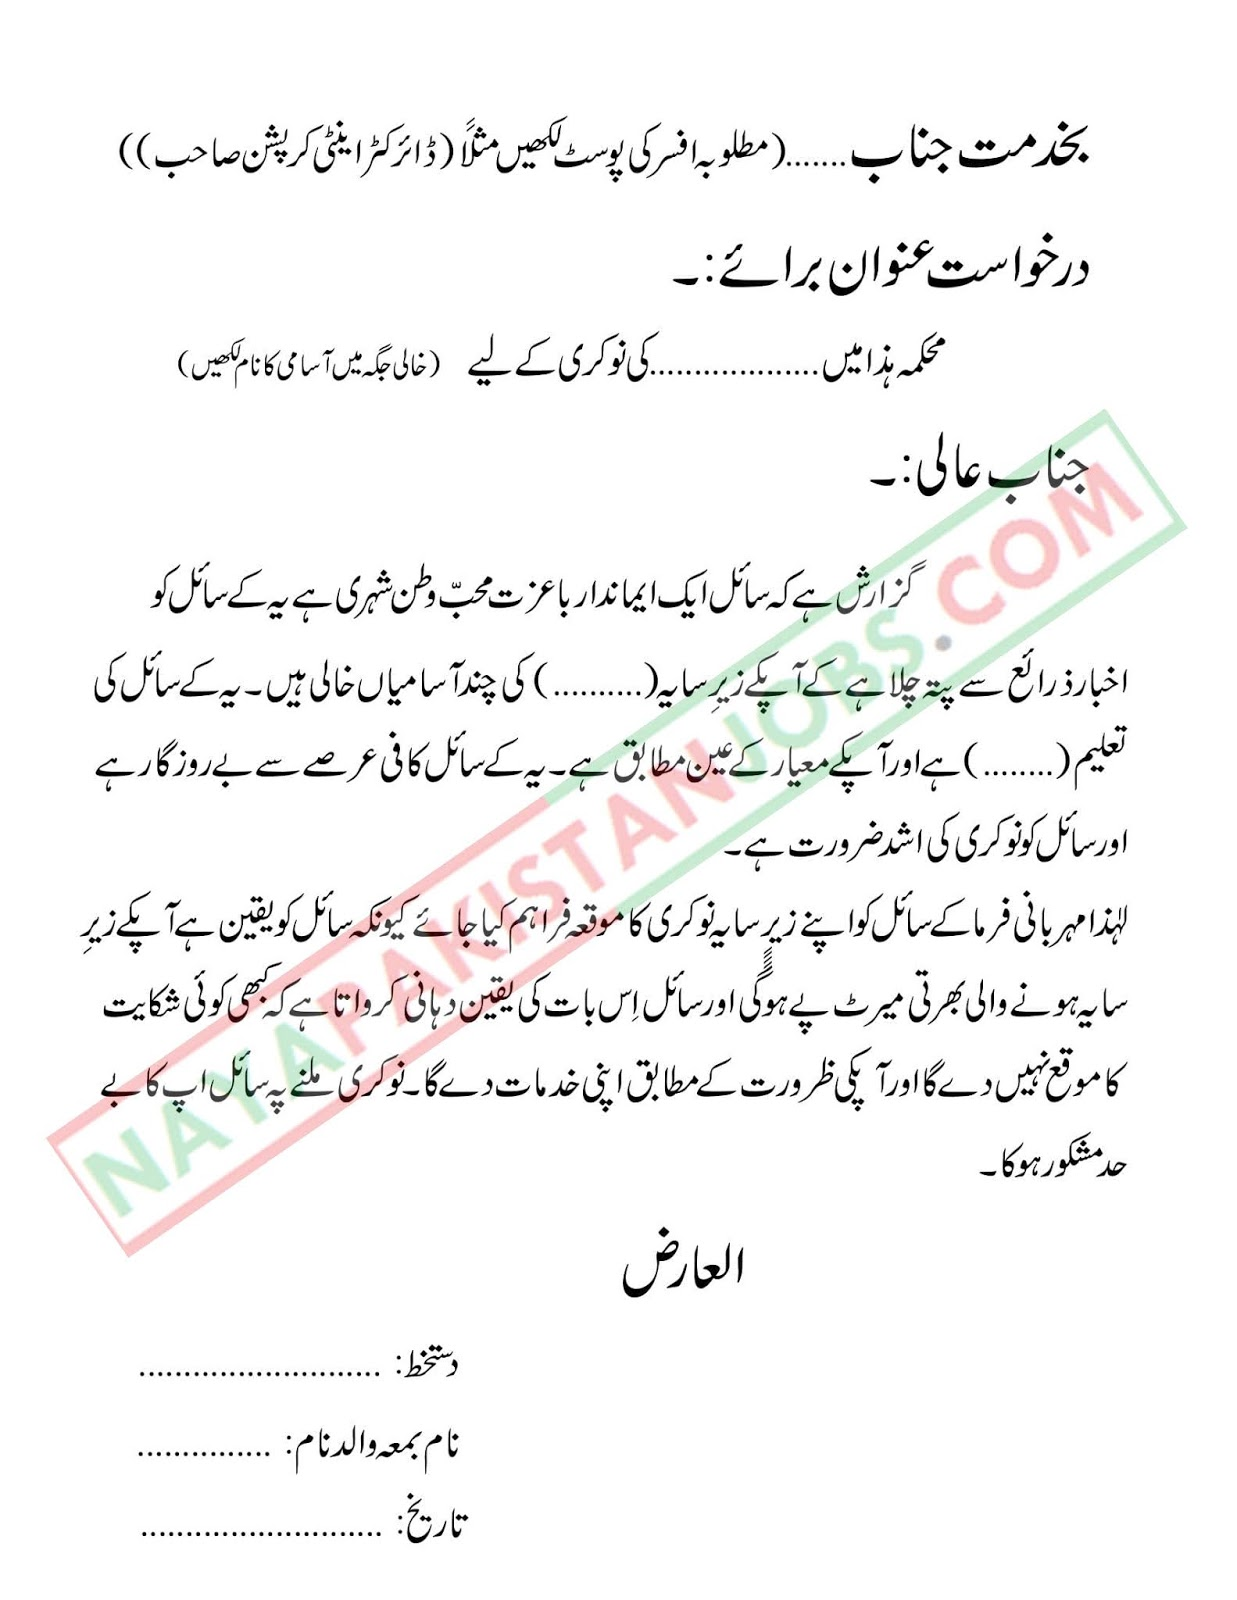 application for job in urdu pdf, teacher job application in urdu language, method of application writing in urdu, application letter for job in school in urdu, sample application for government job in pakistan, govt job application letter format, application for teaching job in urdu language, urdu application pdf